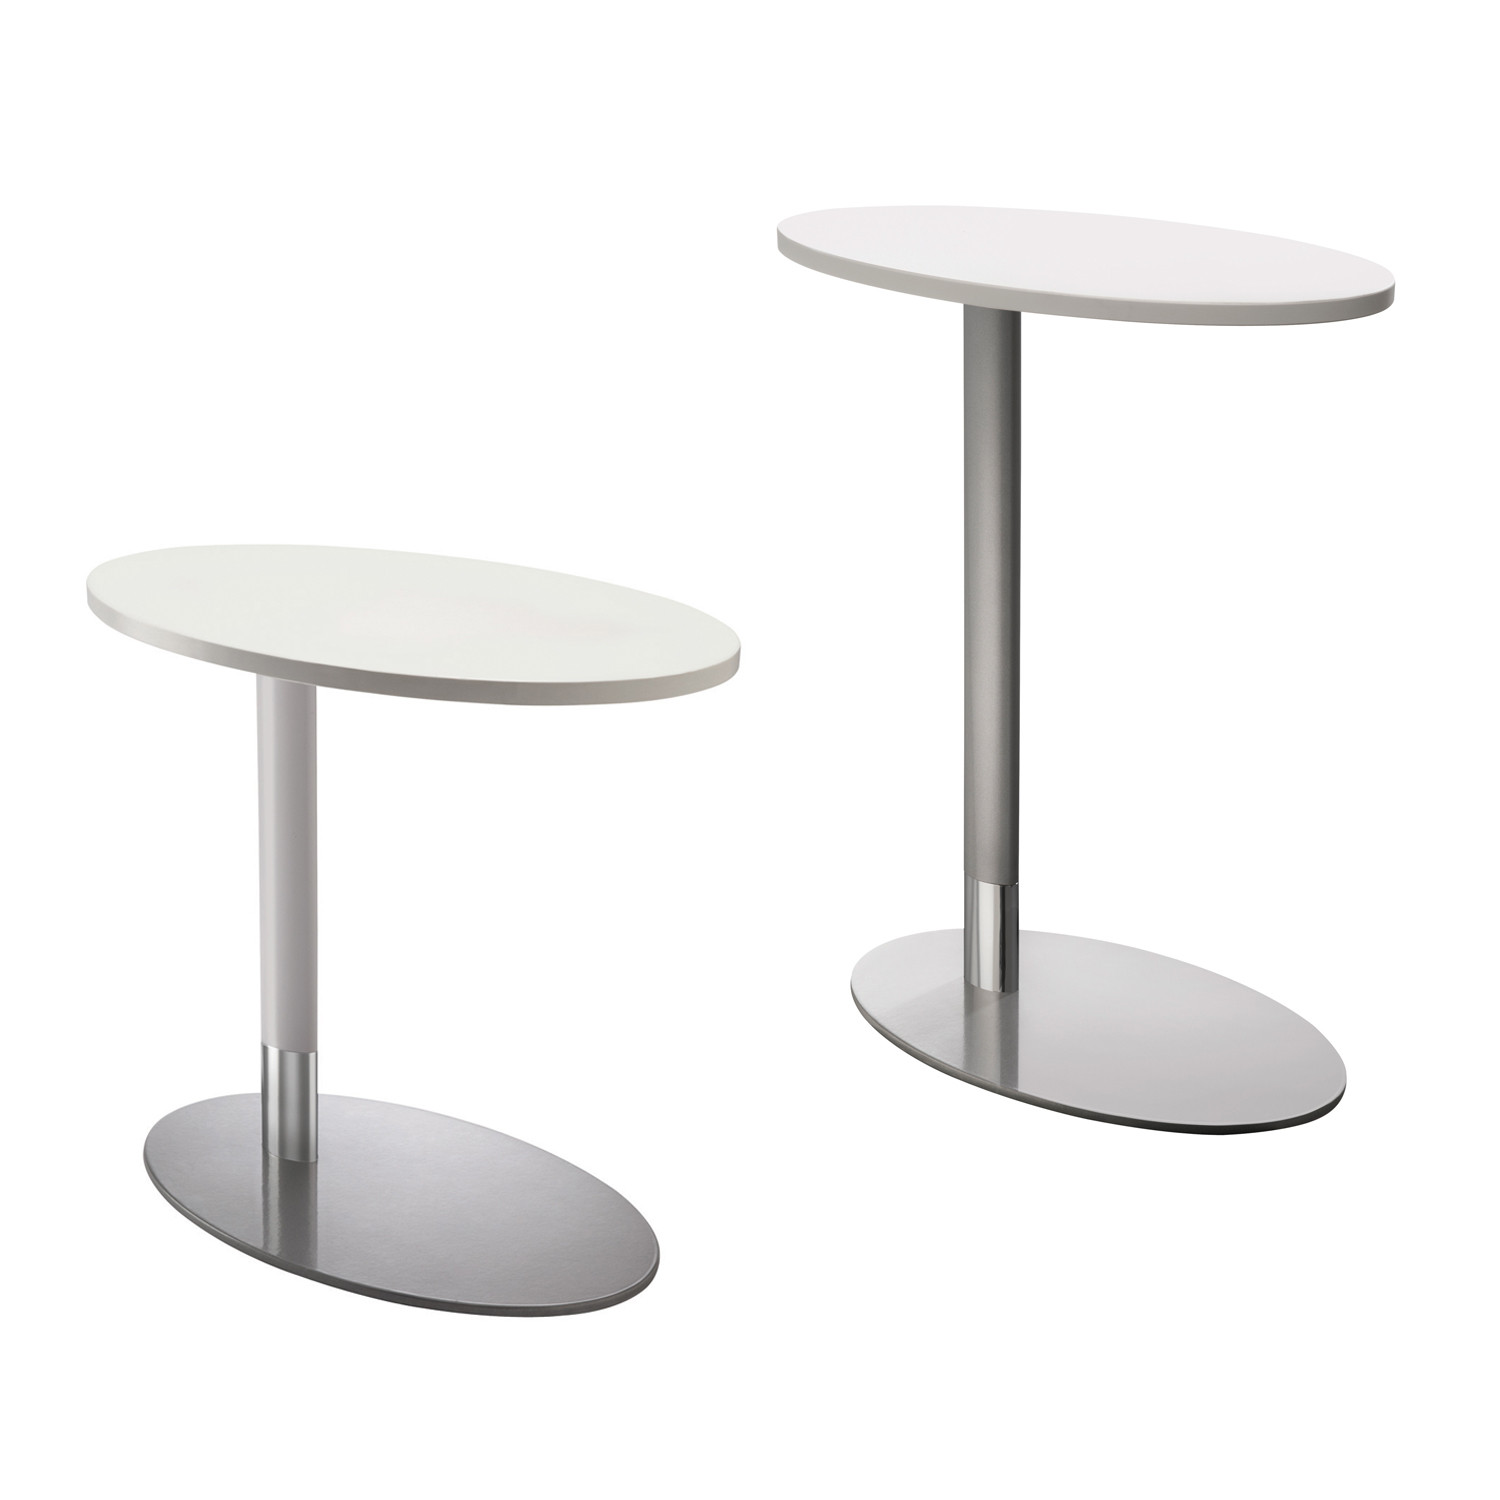 David Fox Zeus Table Range